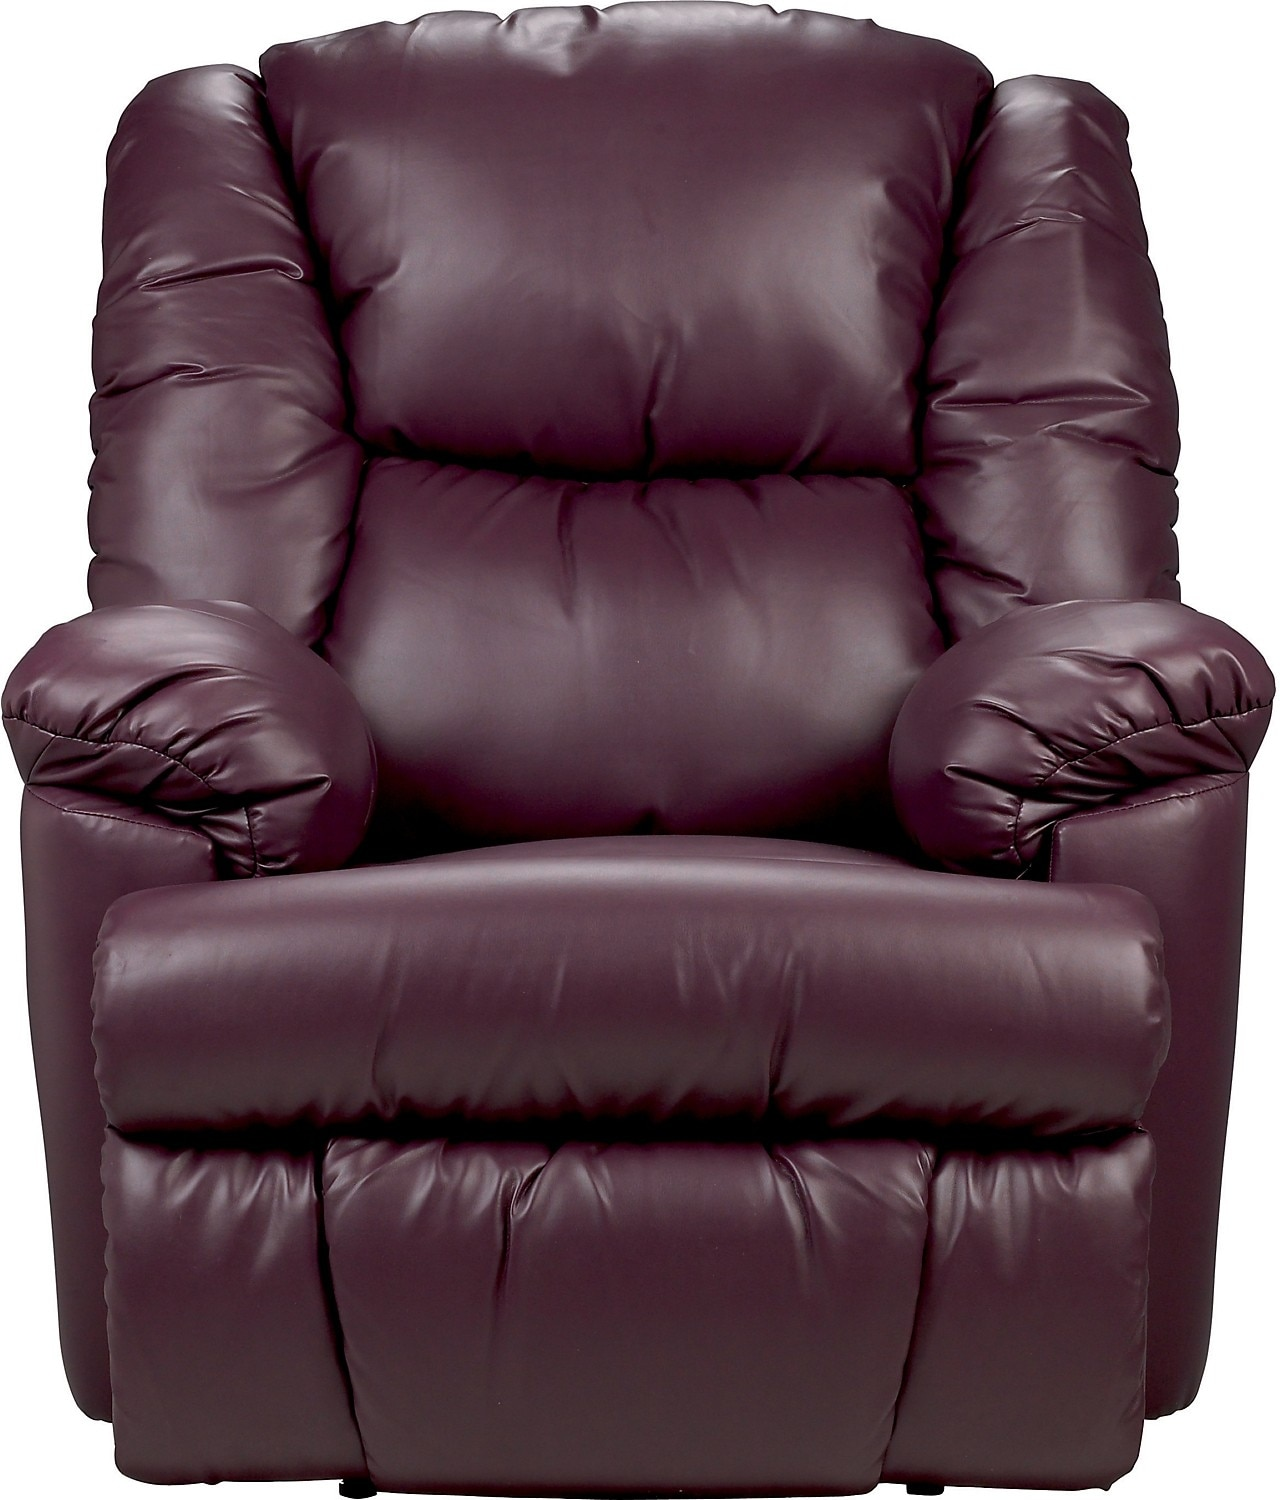 Bmaxx Bonded Leather Power Reclining Chair Purple The Brick